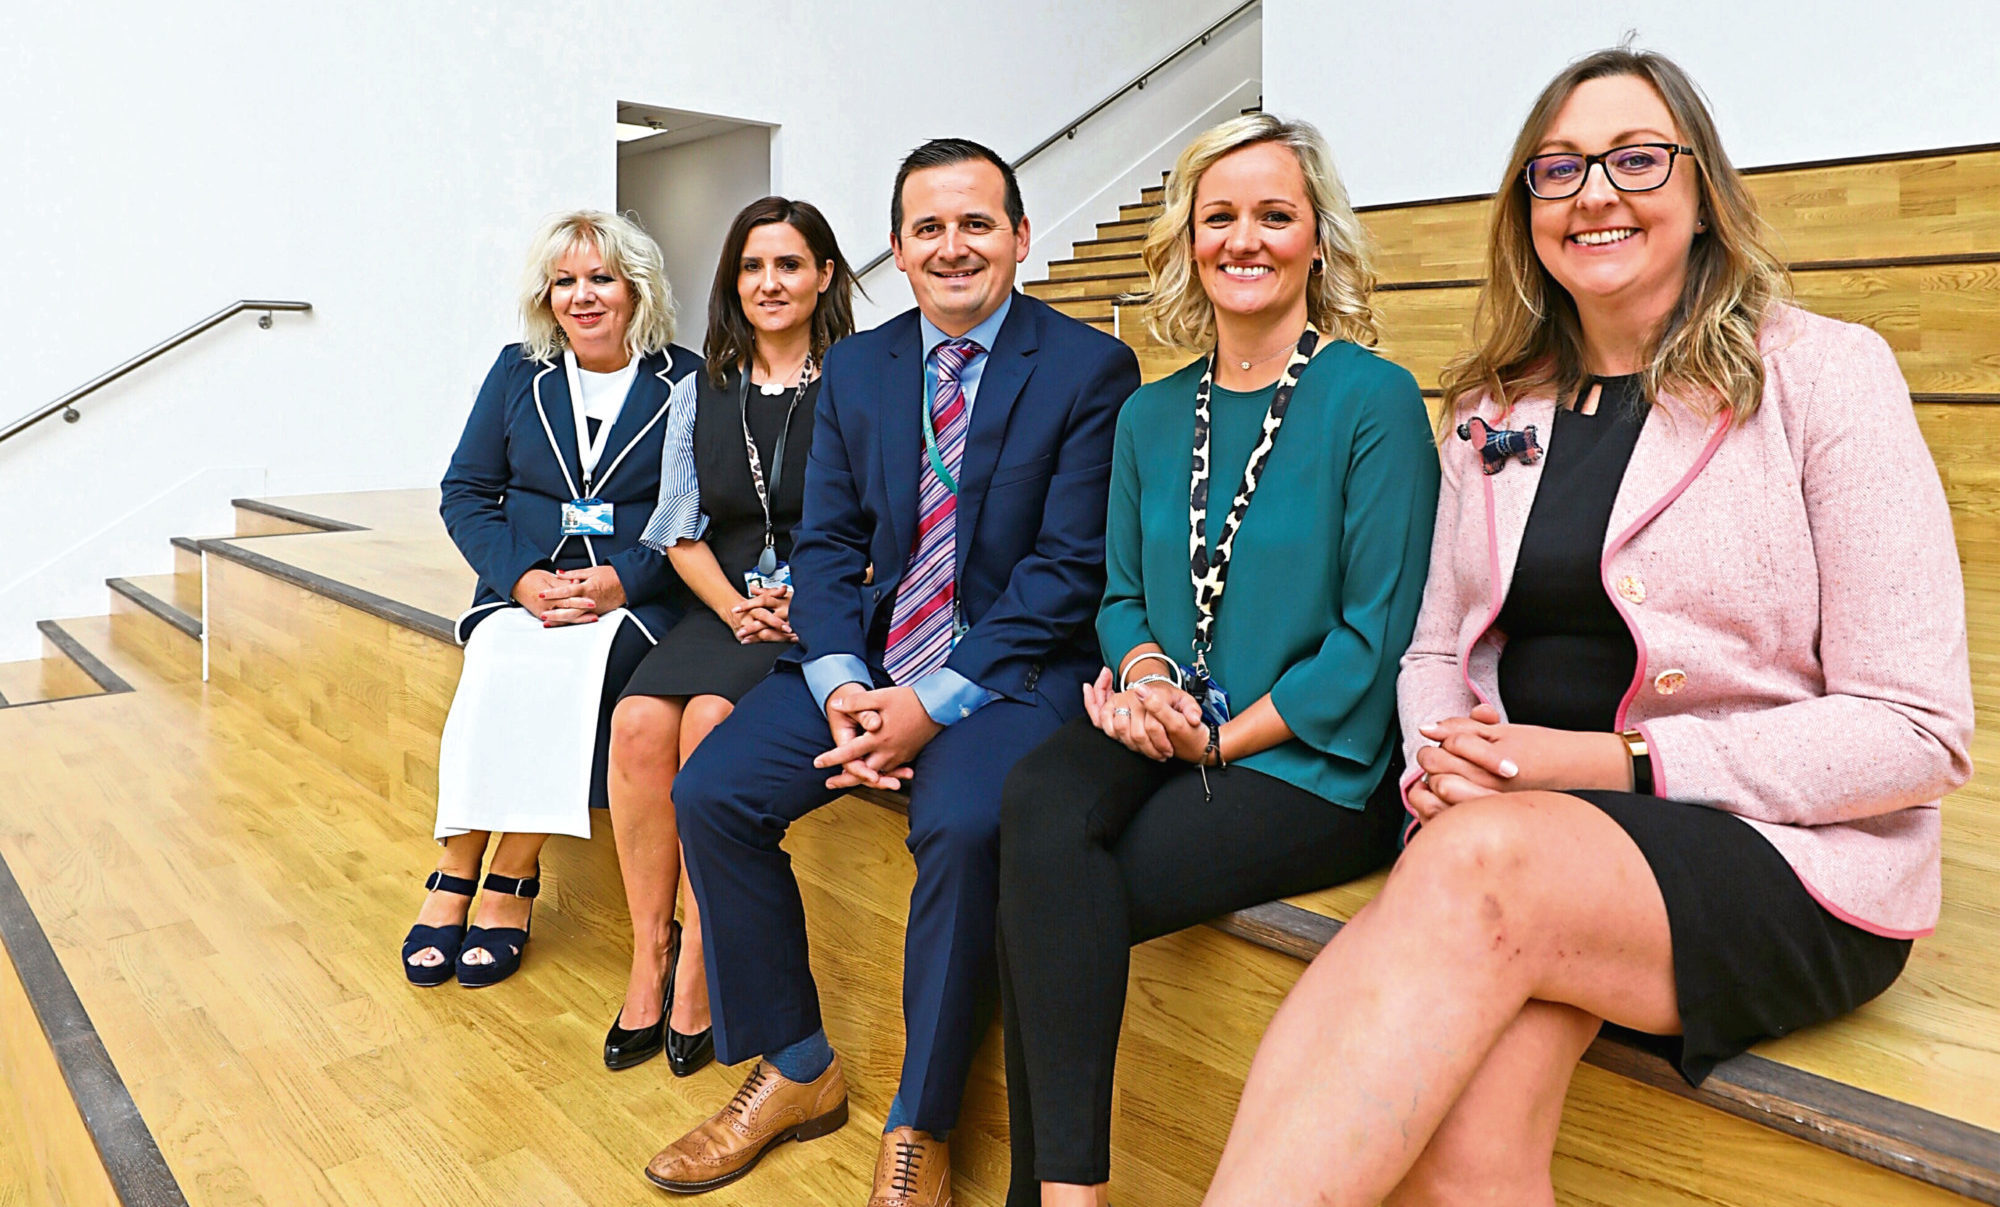 Chief education officer at Dundee City Council Audrey May, Nicola Jenkin, Neil Lowden, Susan Krachan and Councillor Smith